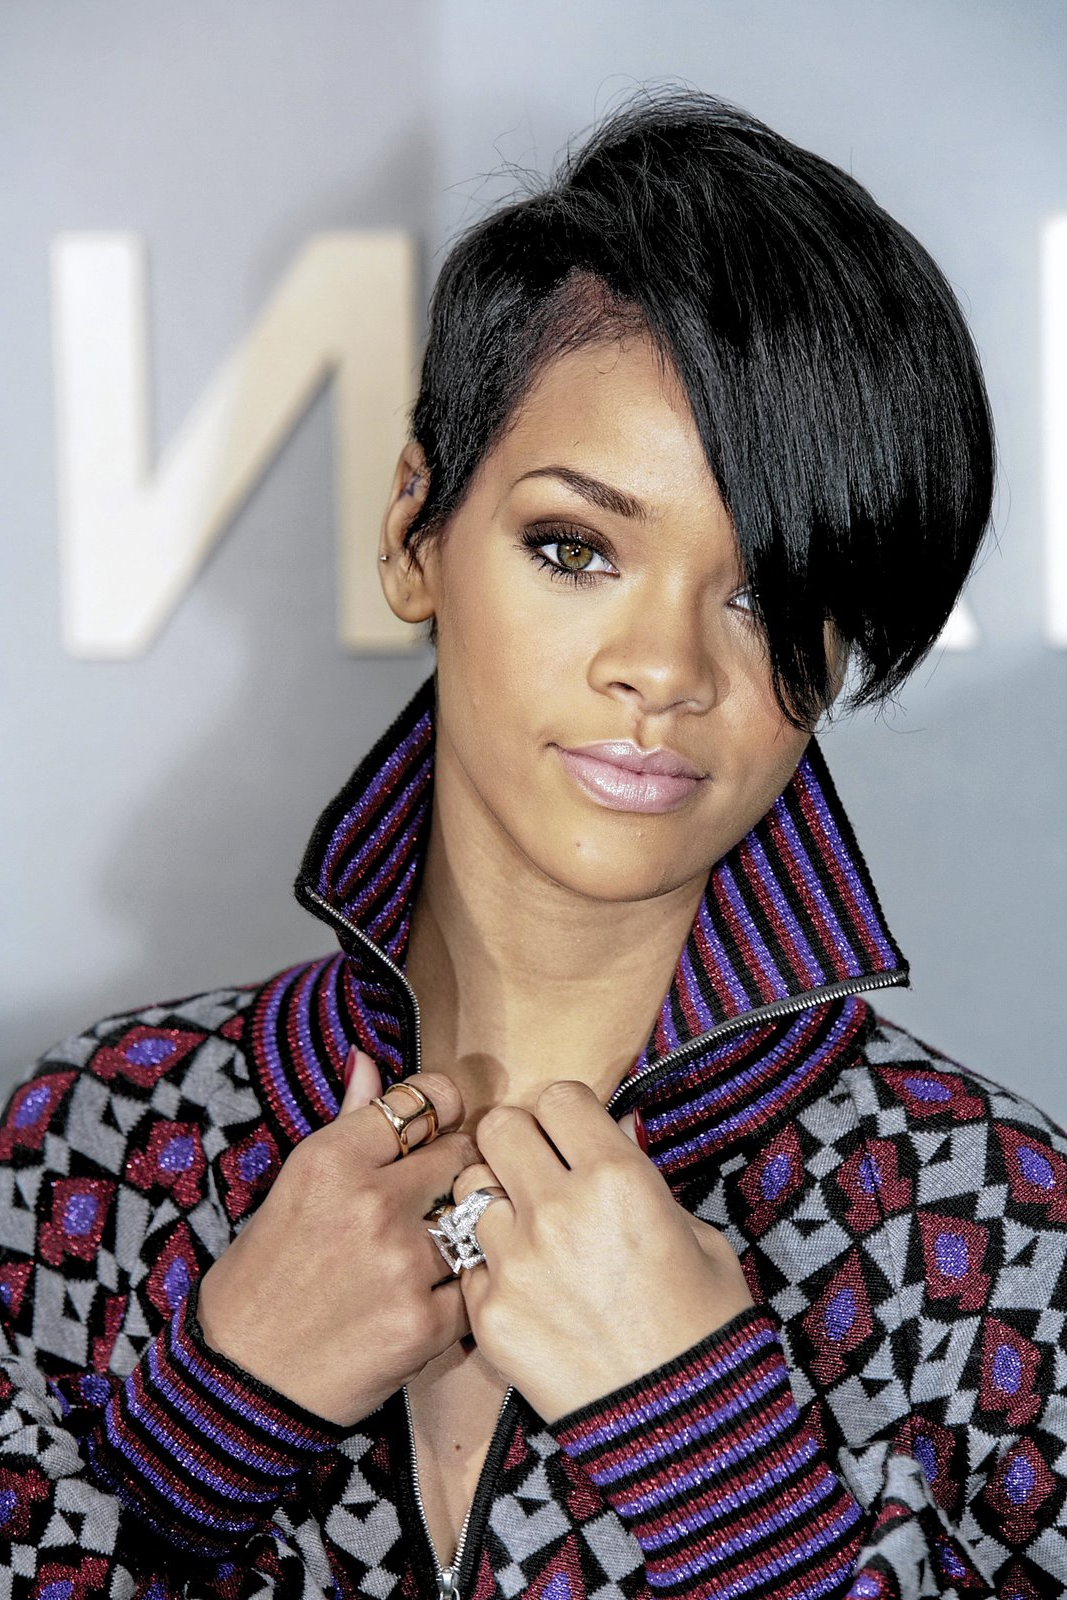 Sexy Short Hairstyles For Black Women – Hairstyle For Women & Man With Black Short Haircuts (View 13 of 25)